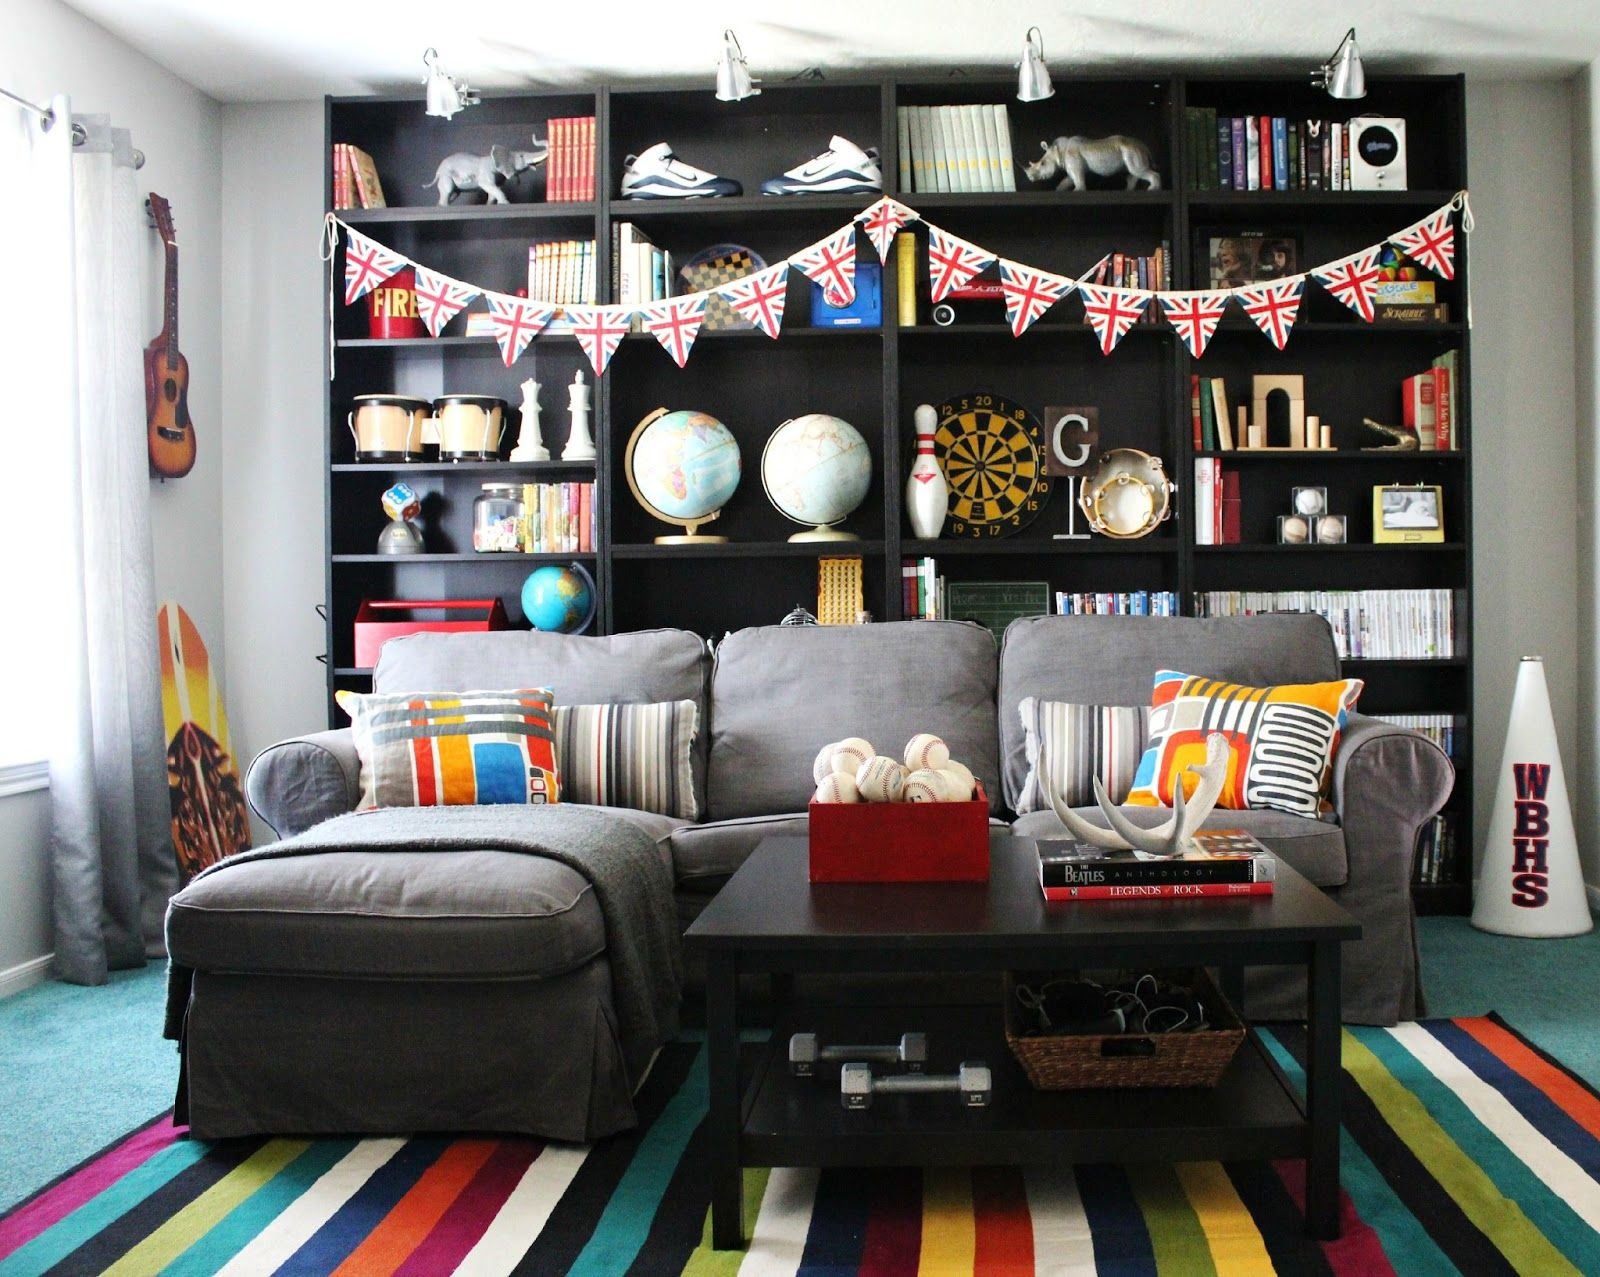 Room Decorating Before and After Makeovers | Game room basement ...